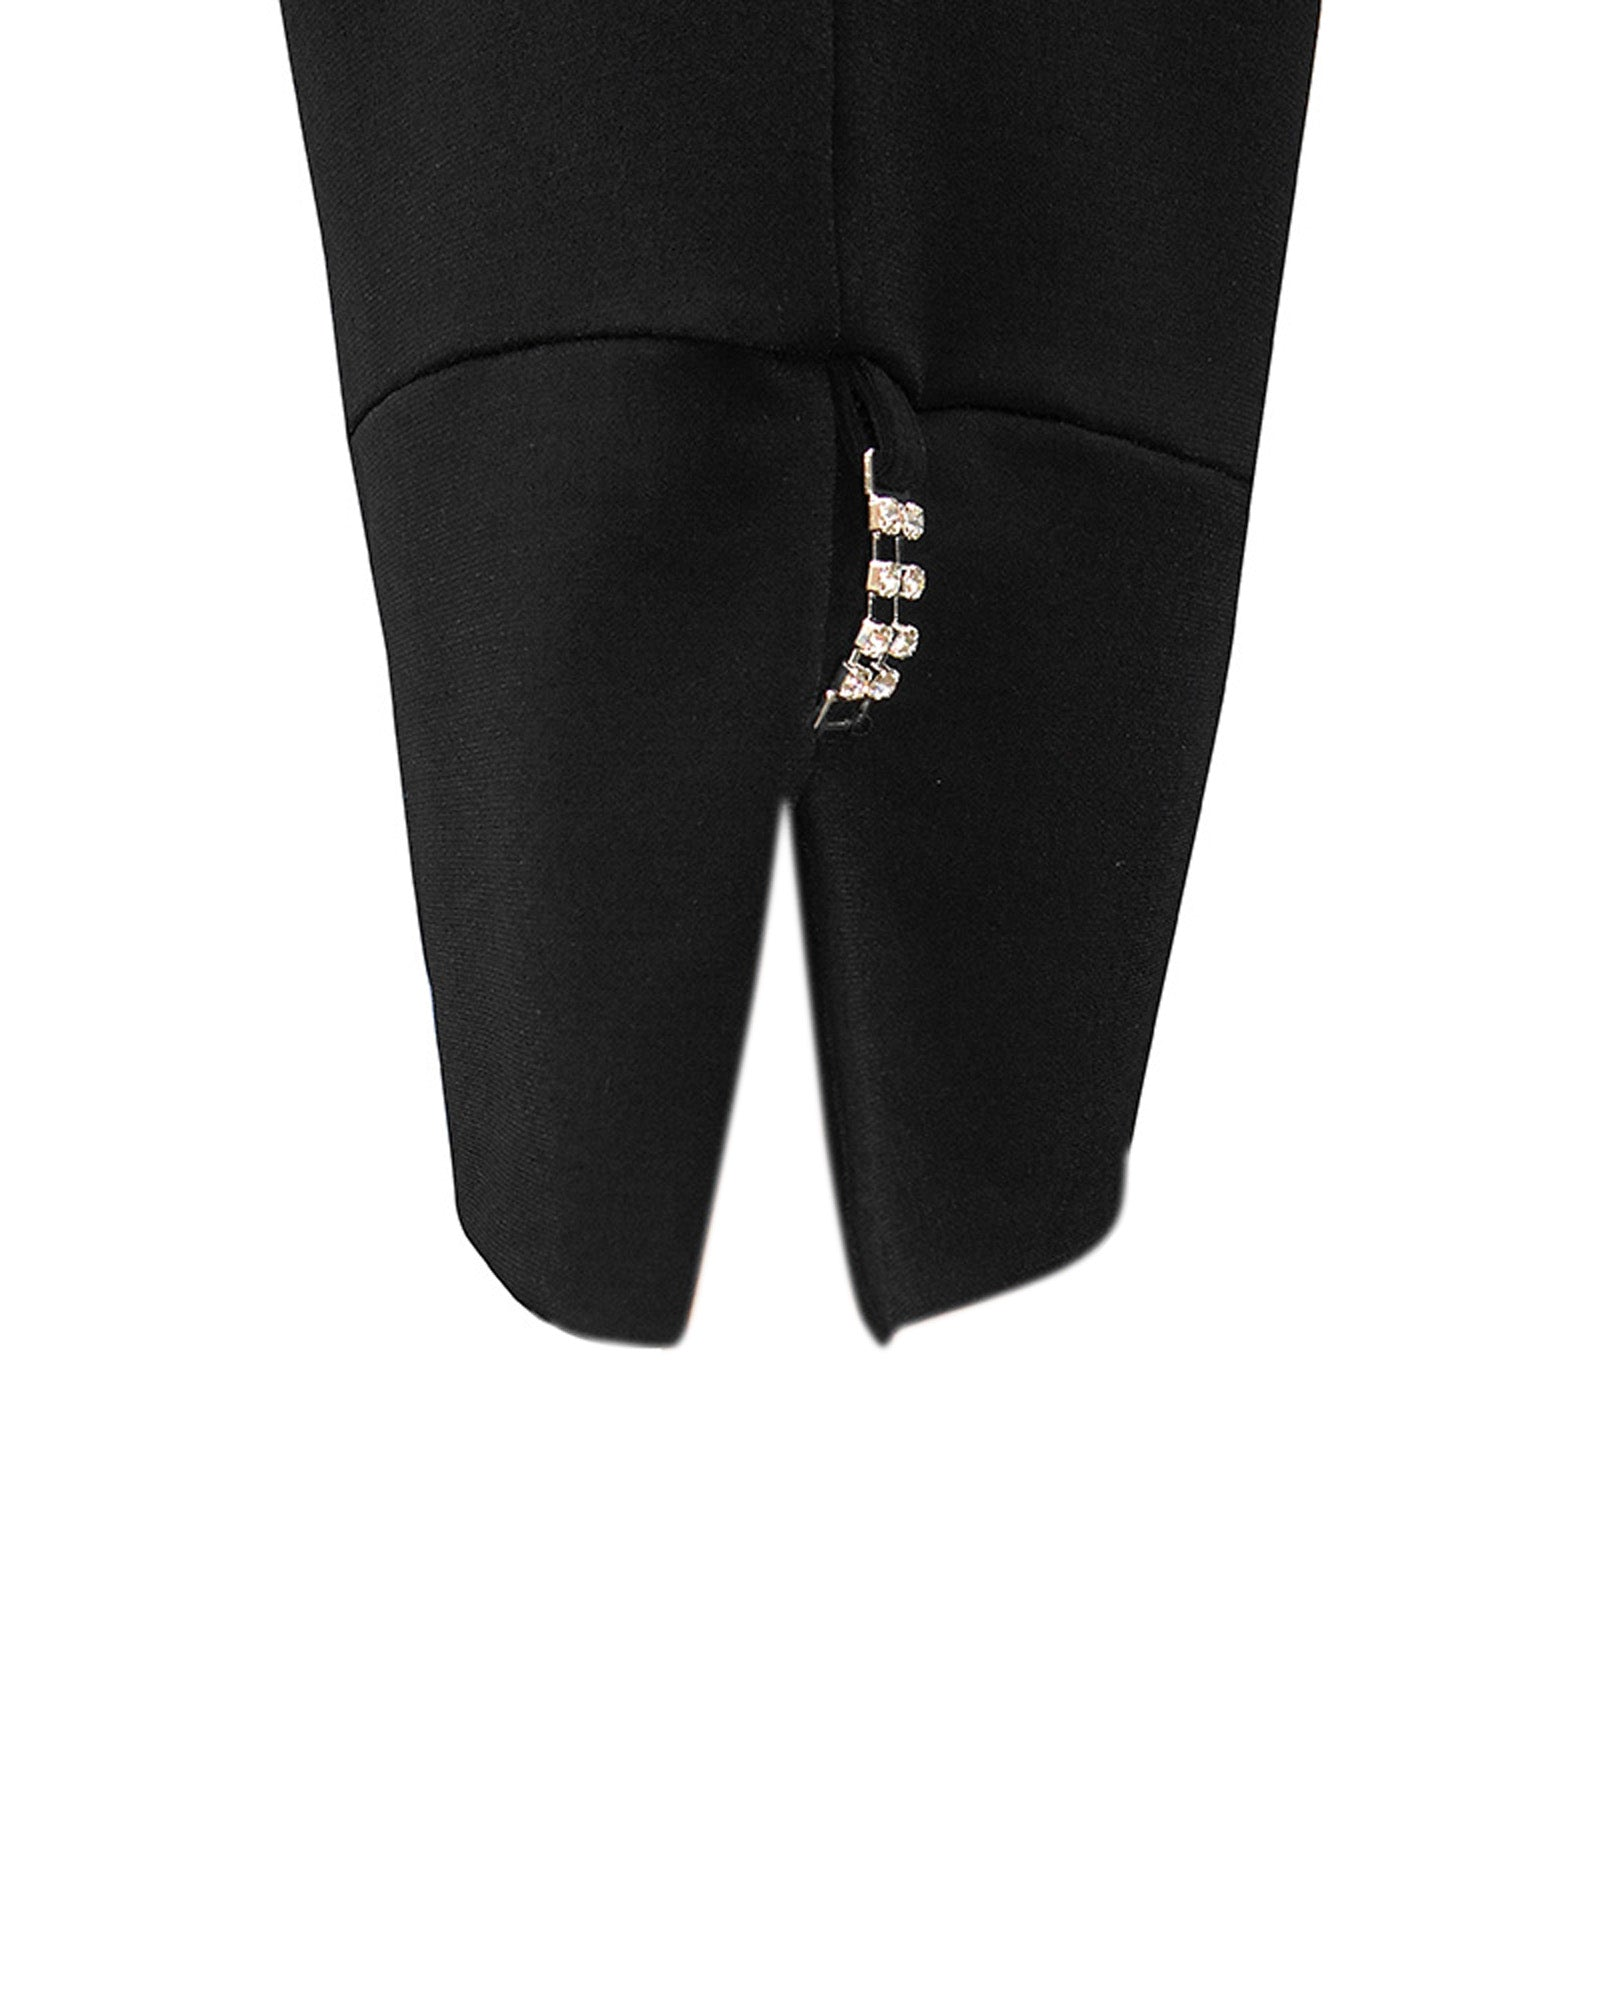 Bonny Soft knit Diamonte Pants- Black